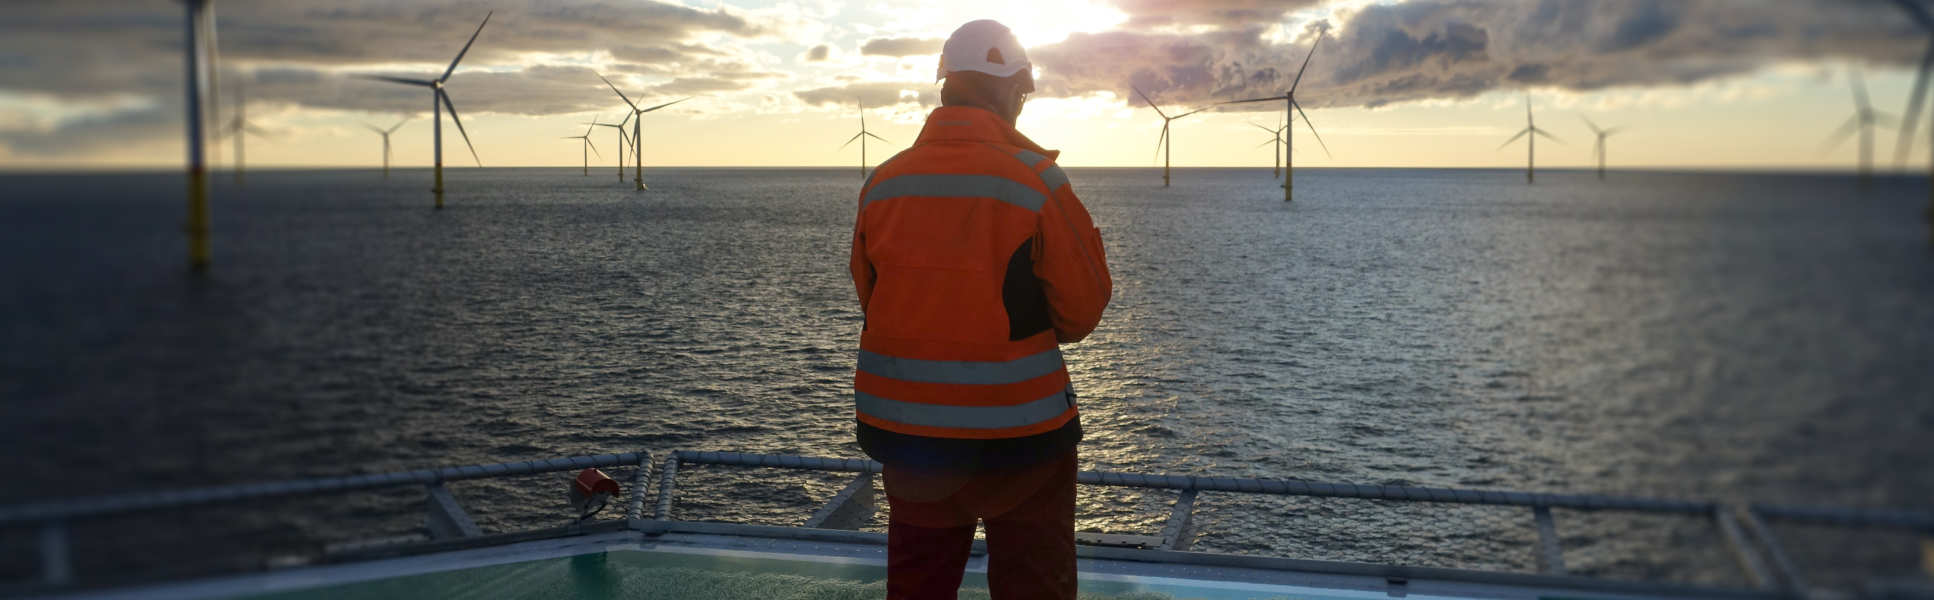 Man on a platform at sea looking out at offshore wind turbines